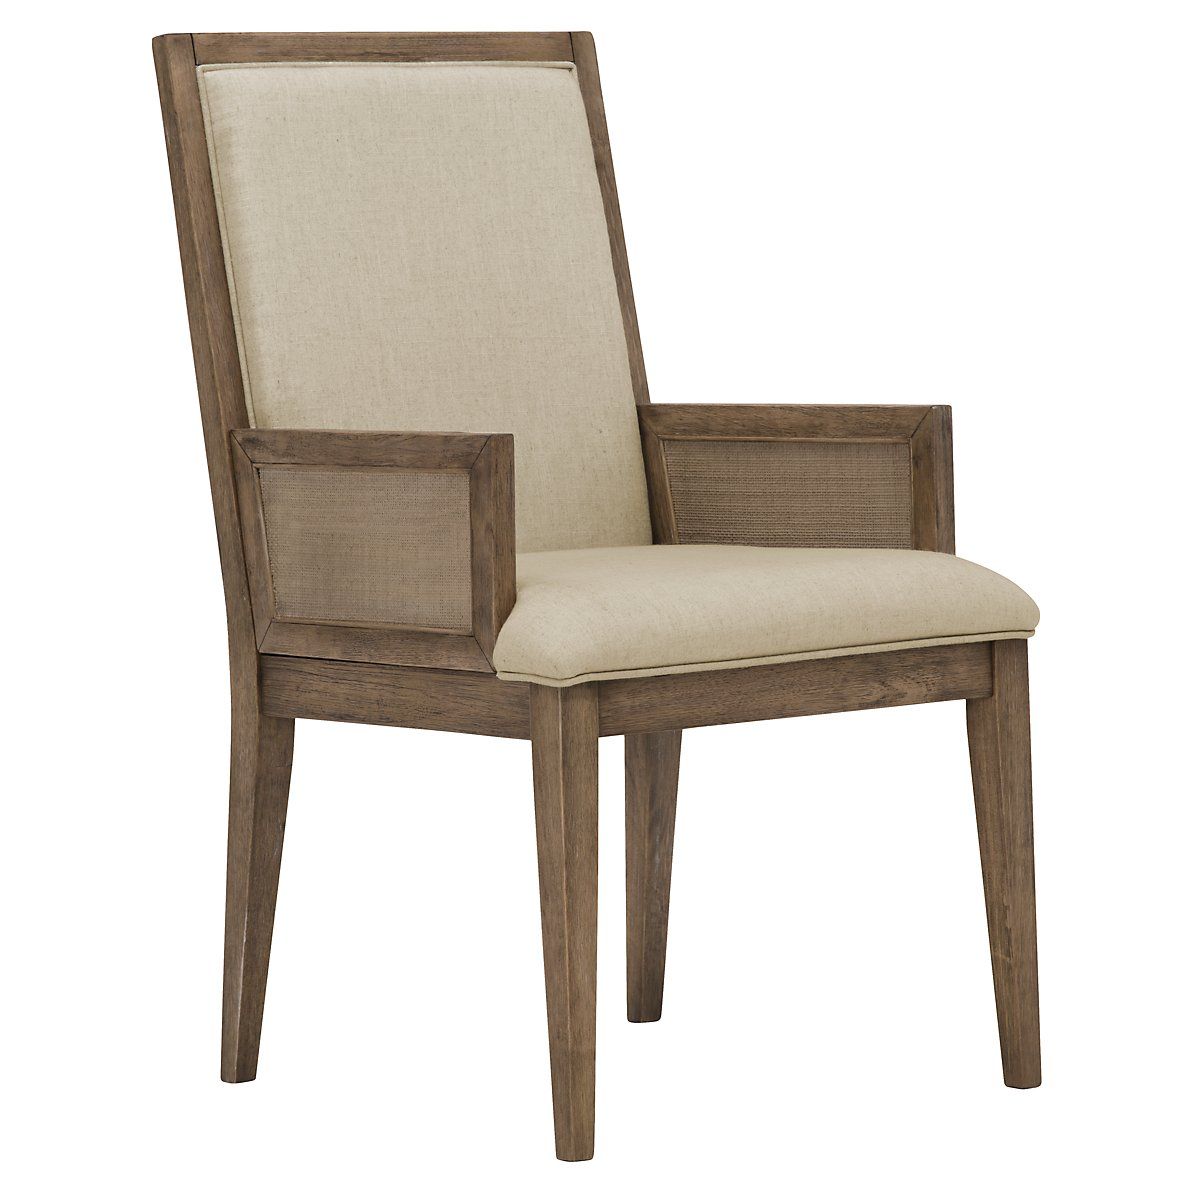 Mirabelle Light Tone Upholstered Arm Chair